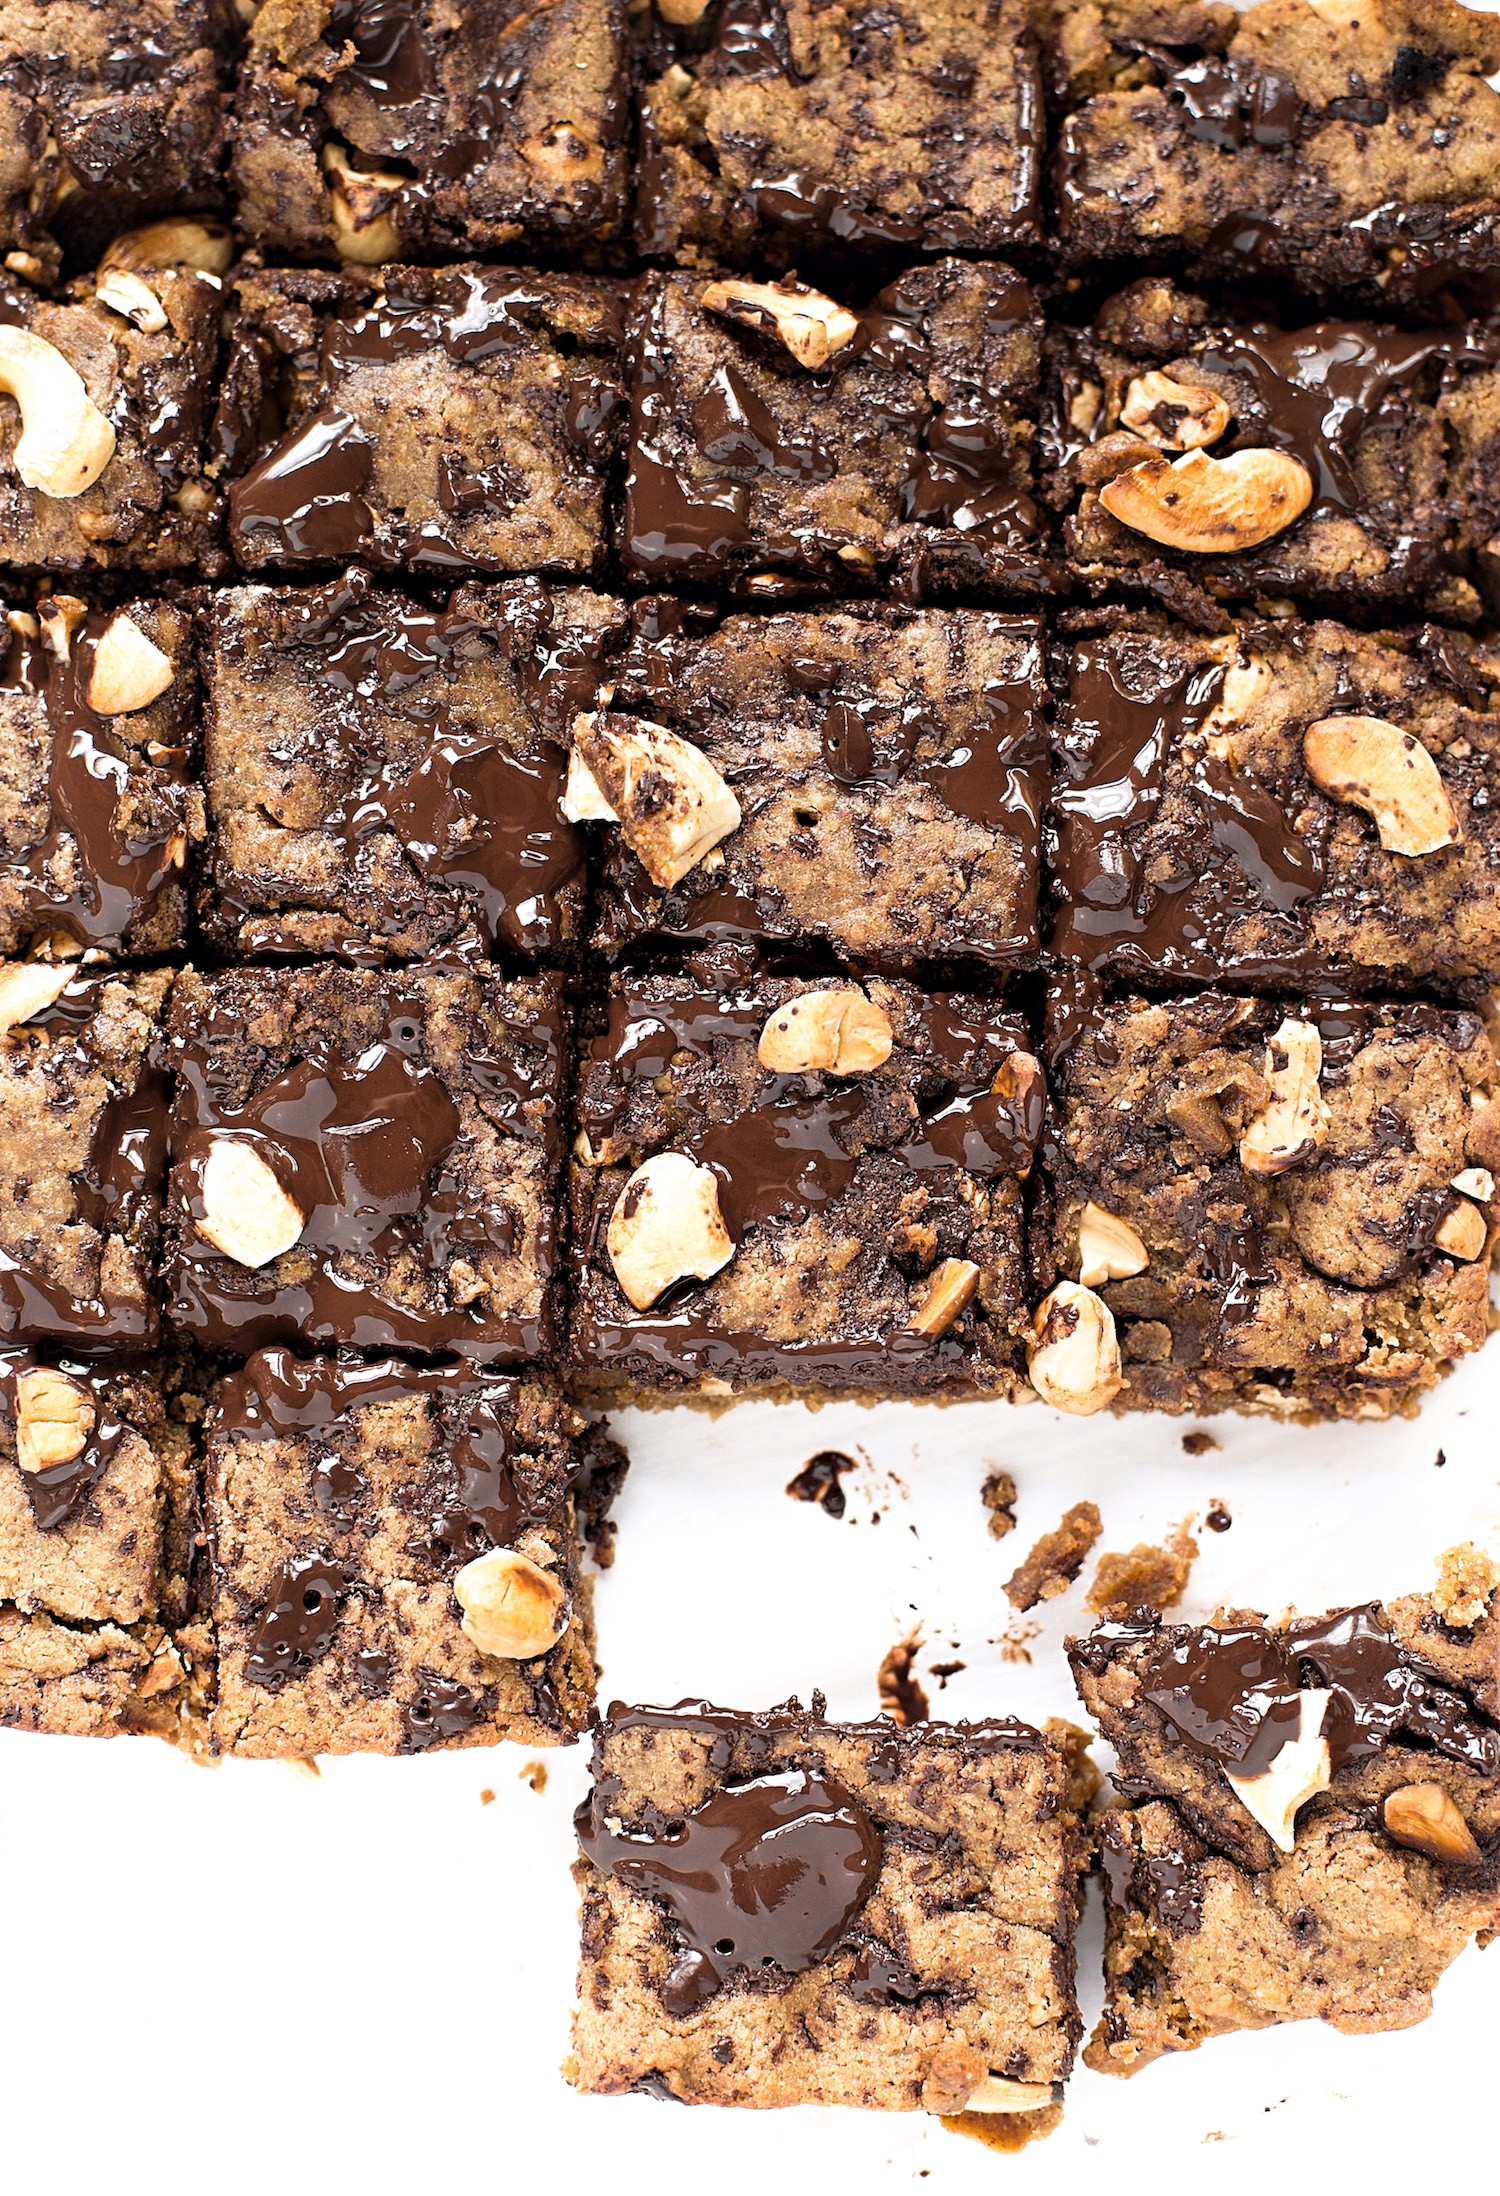 Chocolate Chip Cashew Nut Butter Bars: soft, gooey, rich bars made with coconut oil, nut butter, chocolate chunks, and toasted cashews. | TrufflesandTrends.com